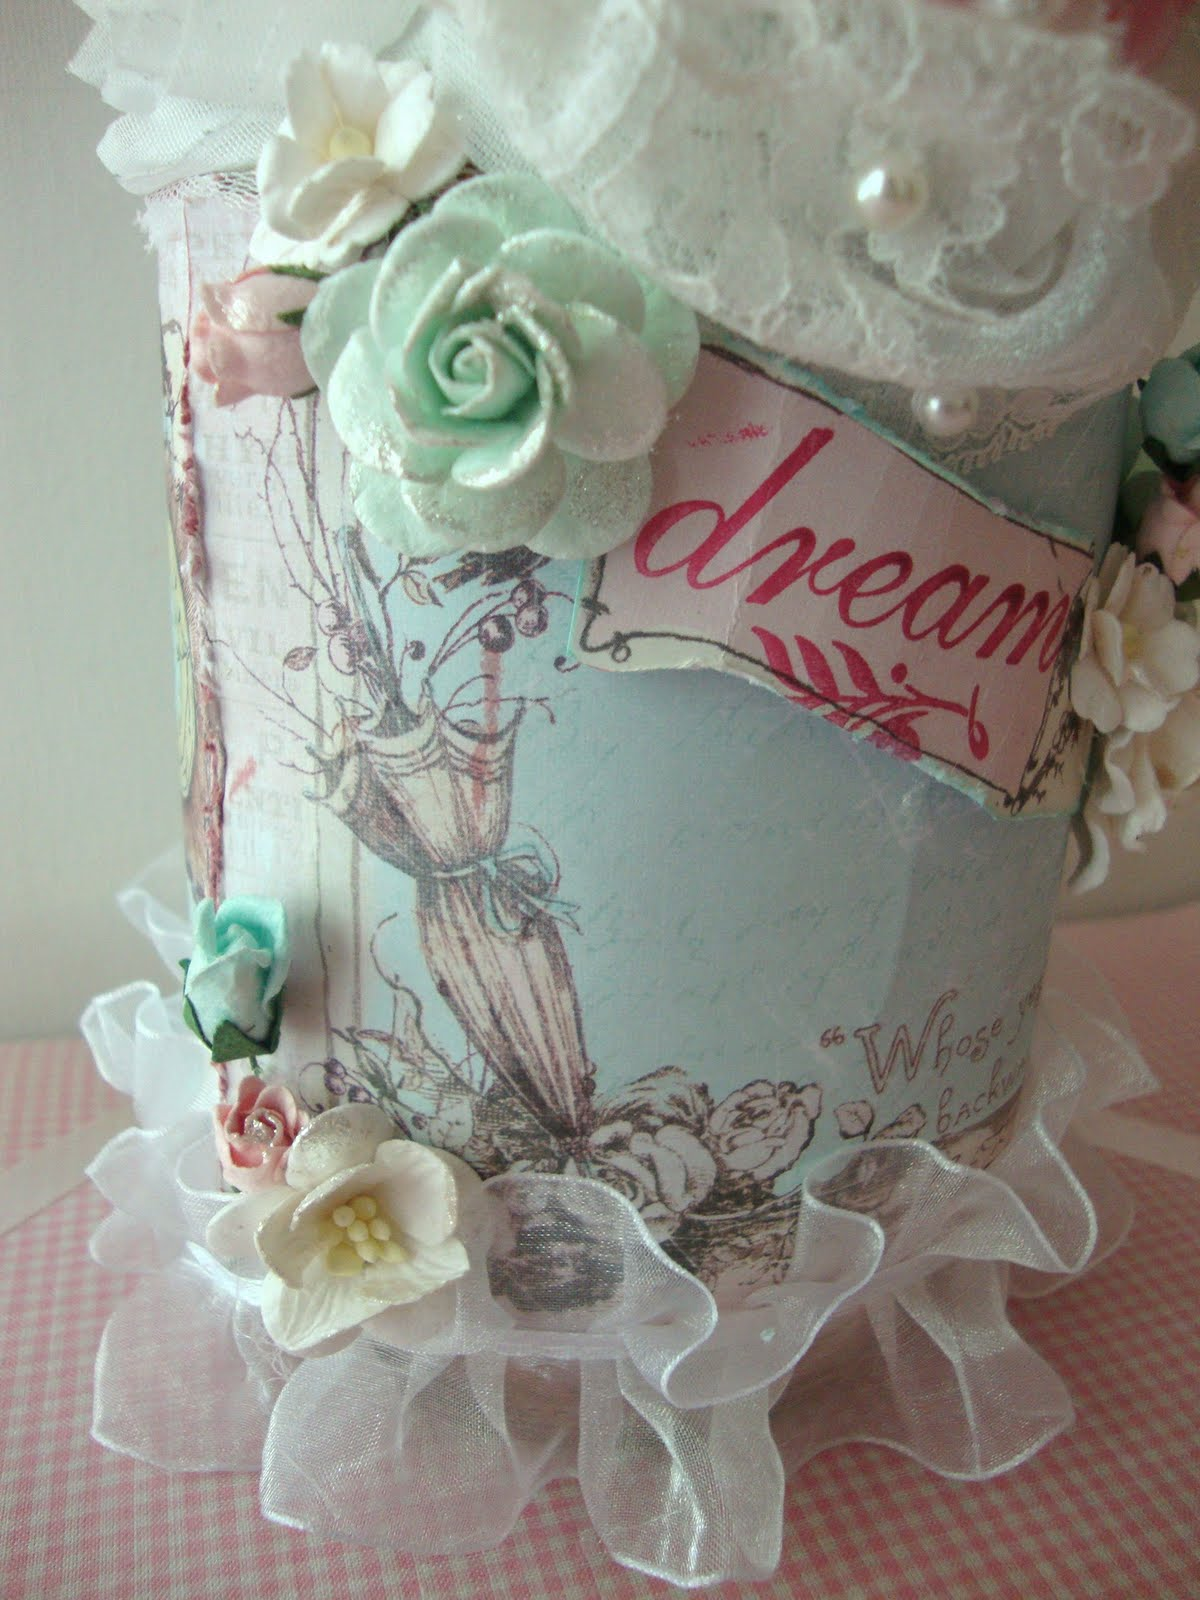 ShabbyChicJCouture : Shabby Chic Altered Glass Jar Using ...